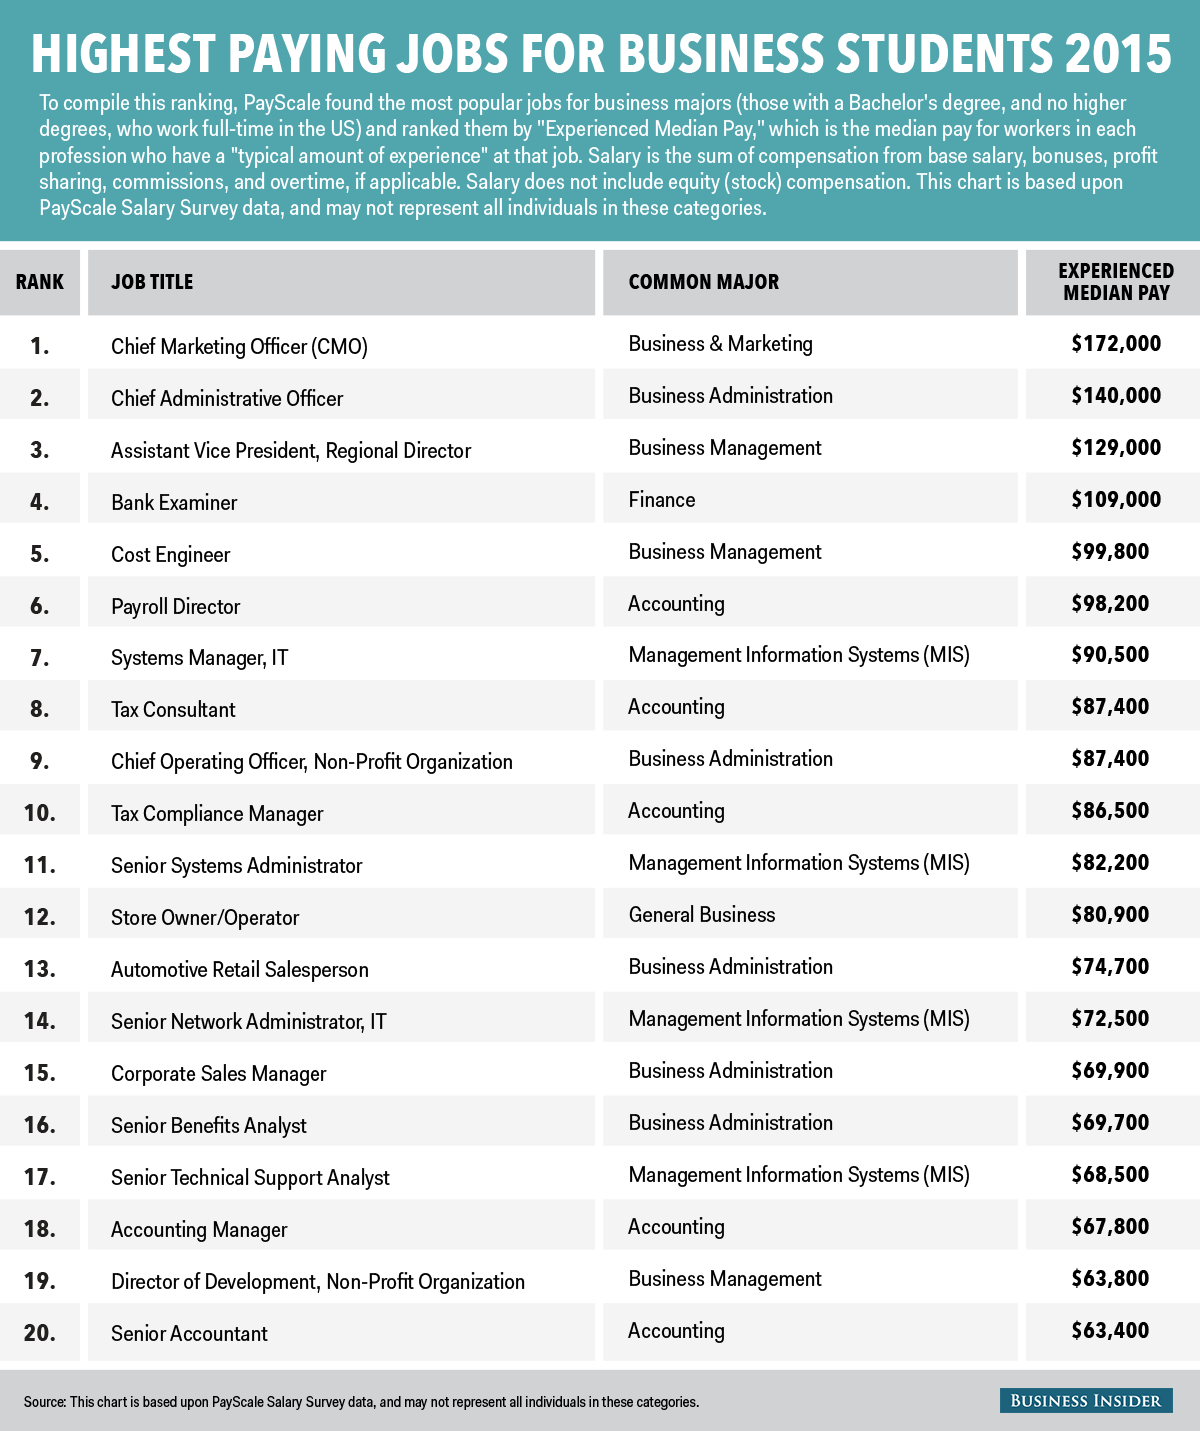 The 20 highest paying jobs for business majors